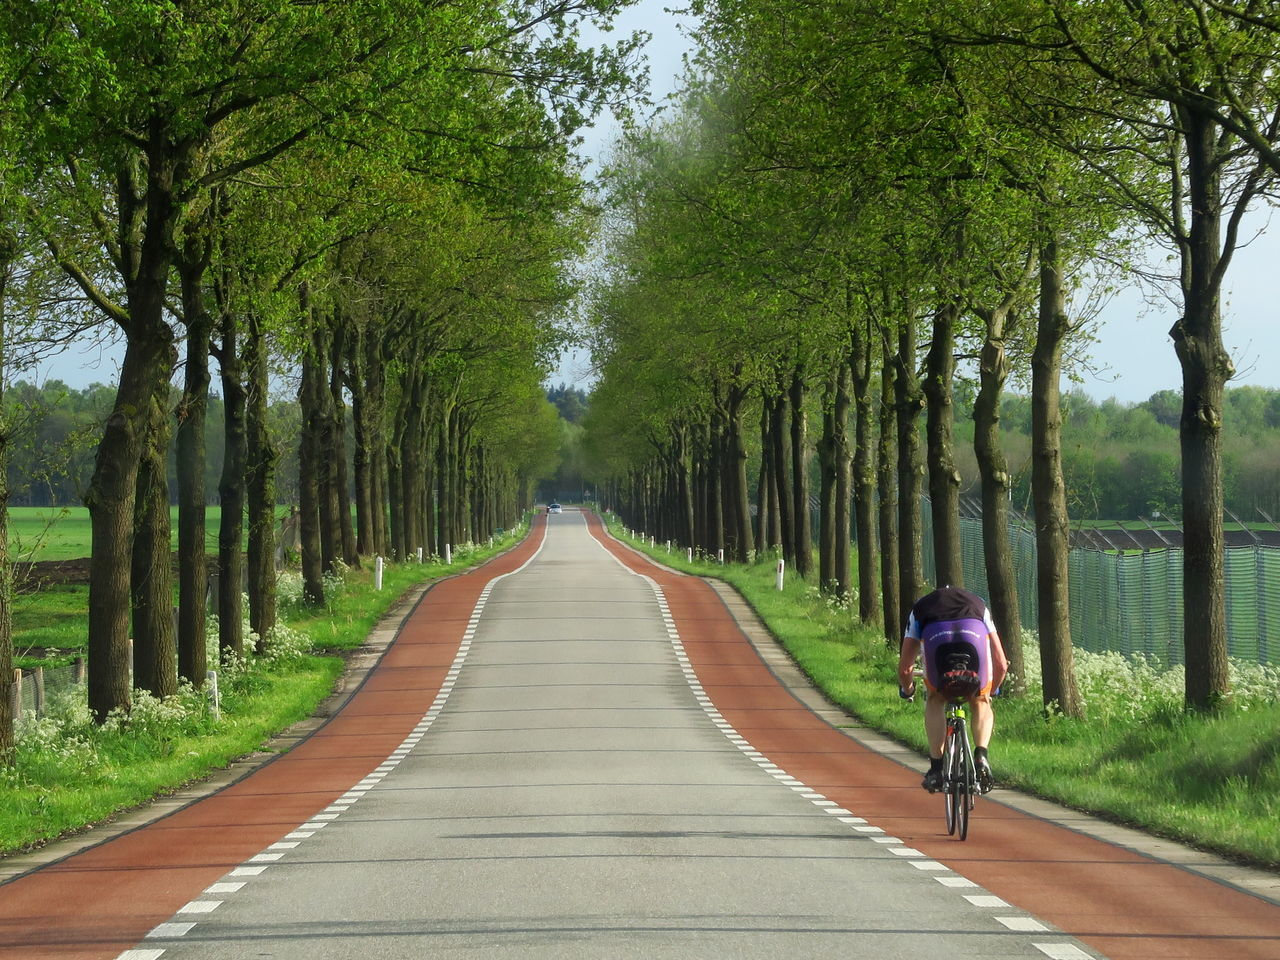 tree, bicycle, the way forward, transportation, real people, cycling, nature, outdoors, rear view, tree trunk, growth, day, road, beauty in nature, men, full length, one person, people